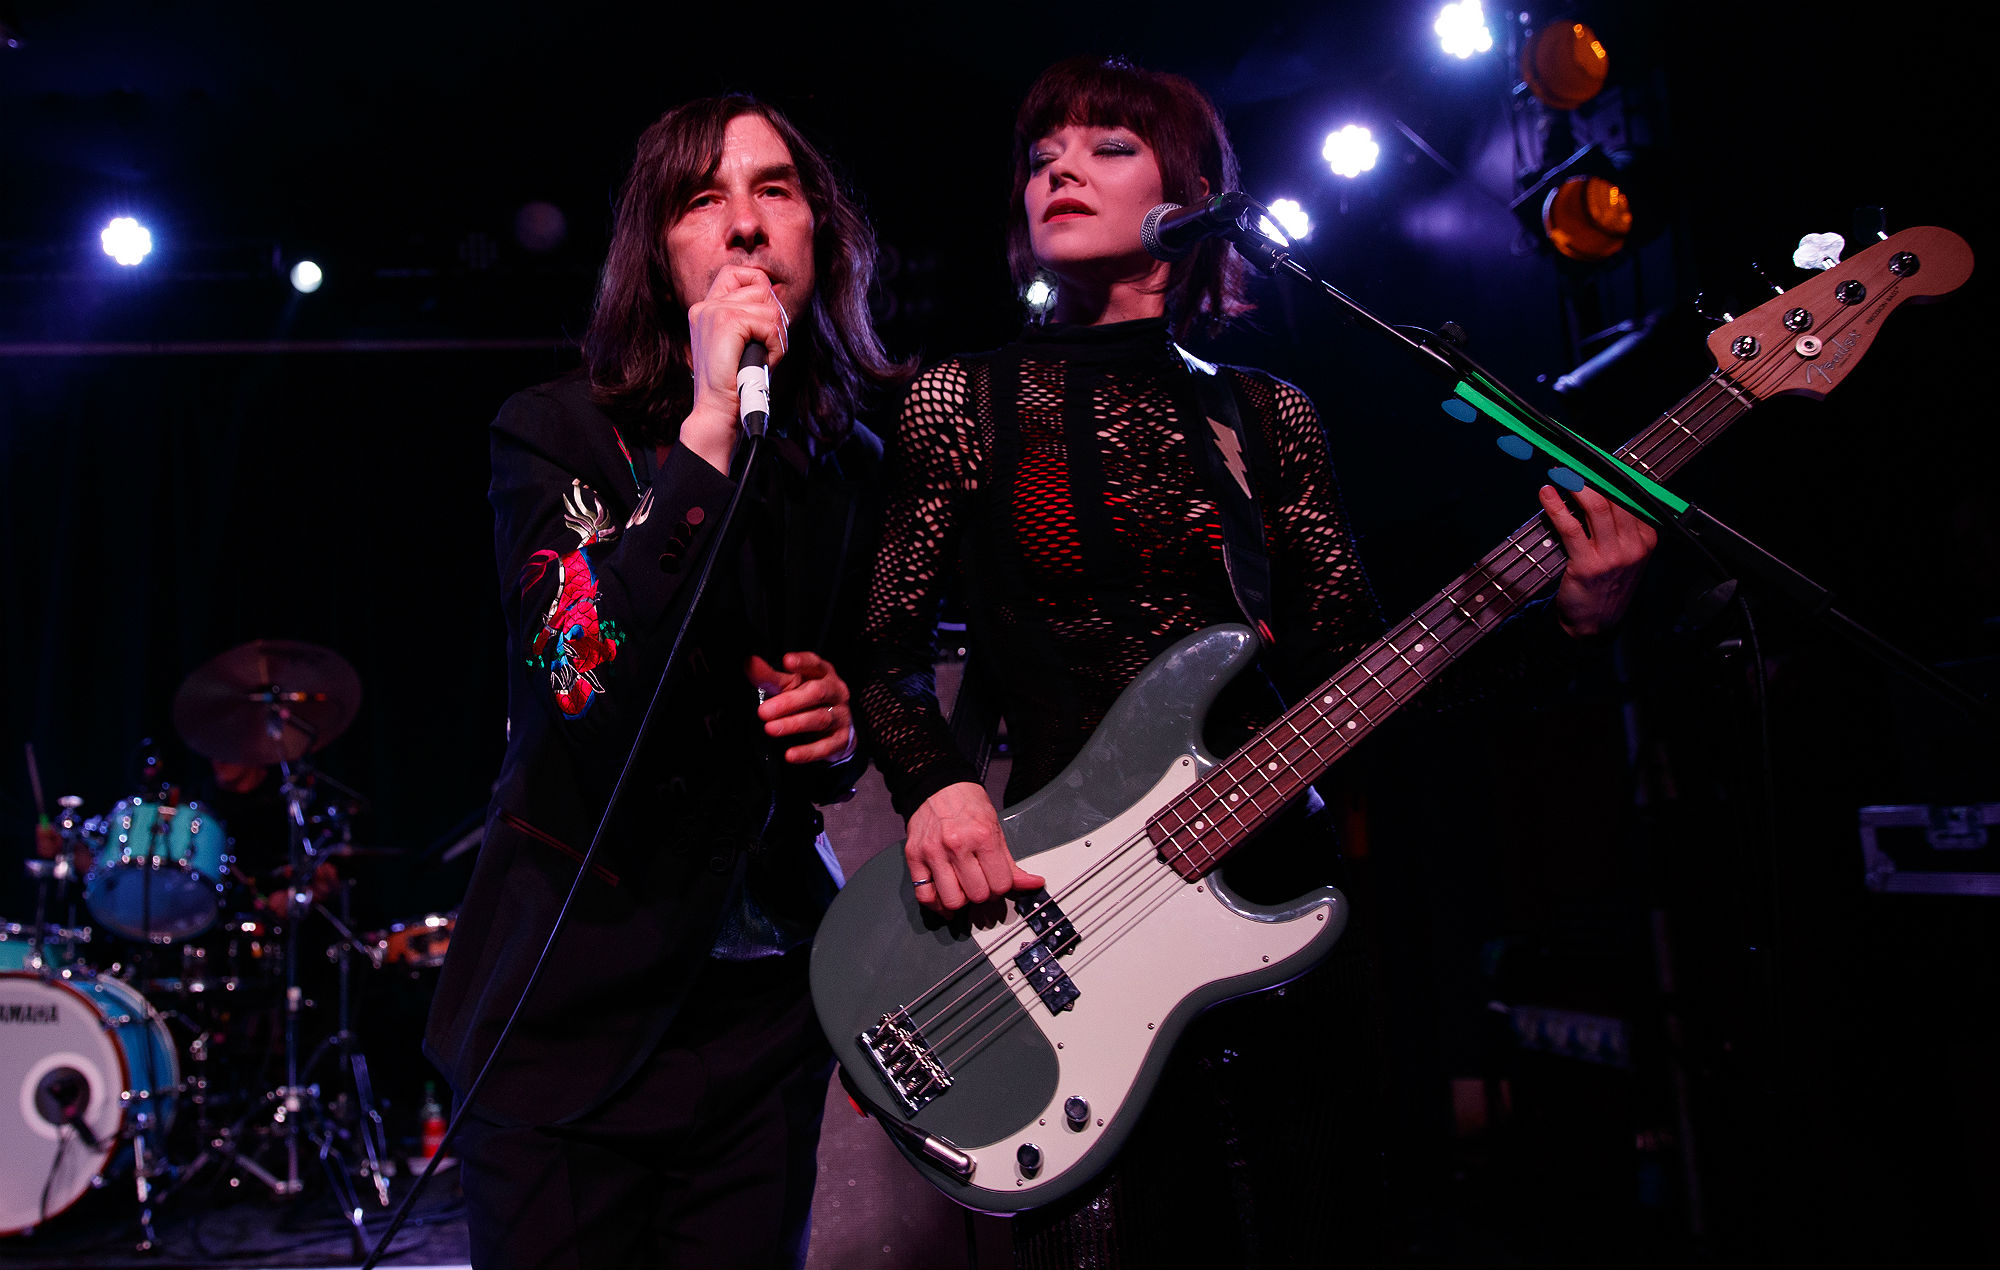 LONDON, ENGLAND - MAY 21: Bobby Gillespie and Simone Butler of Primal Scream perform onstage at Scala on May 21, 2019 in London, England. (Photo by Burak Cingi/Redferns)